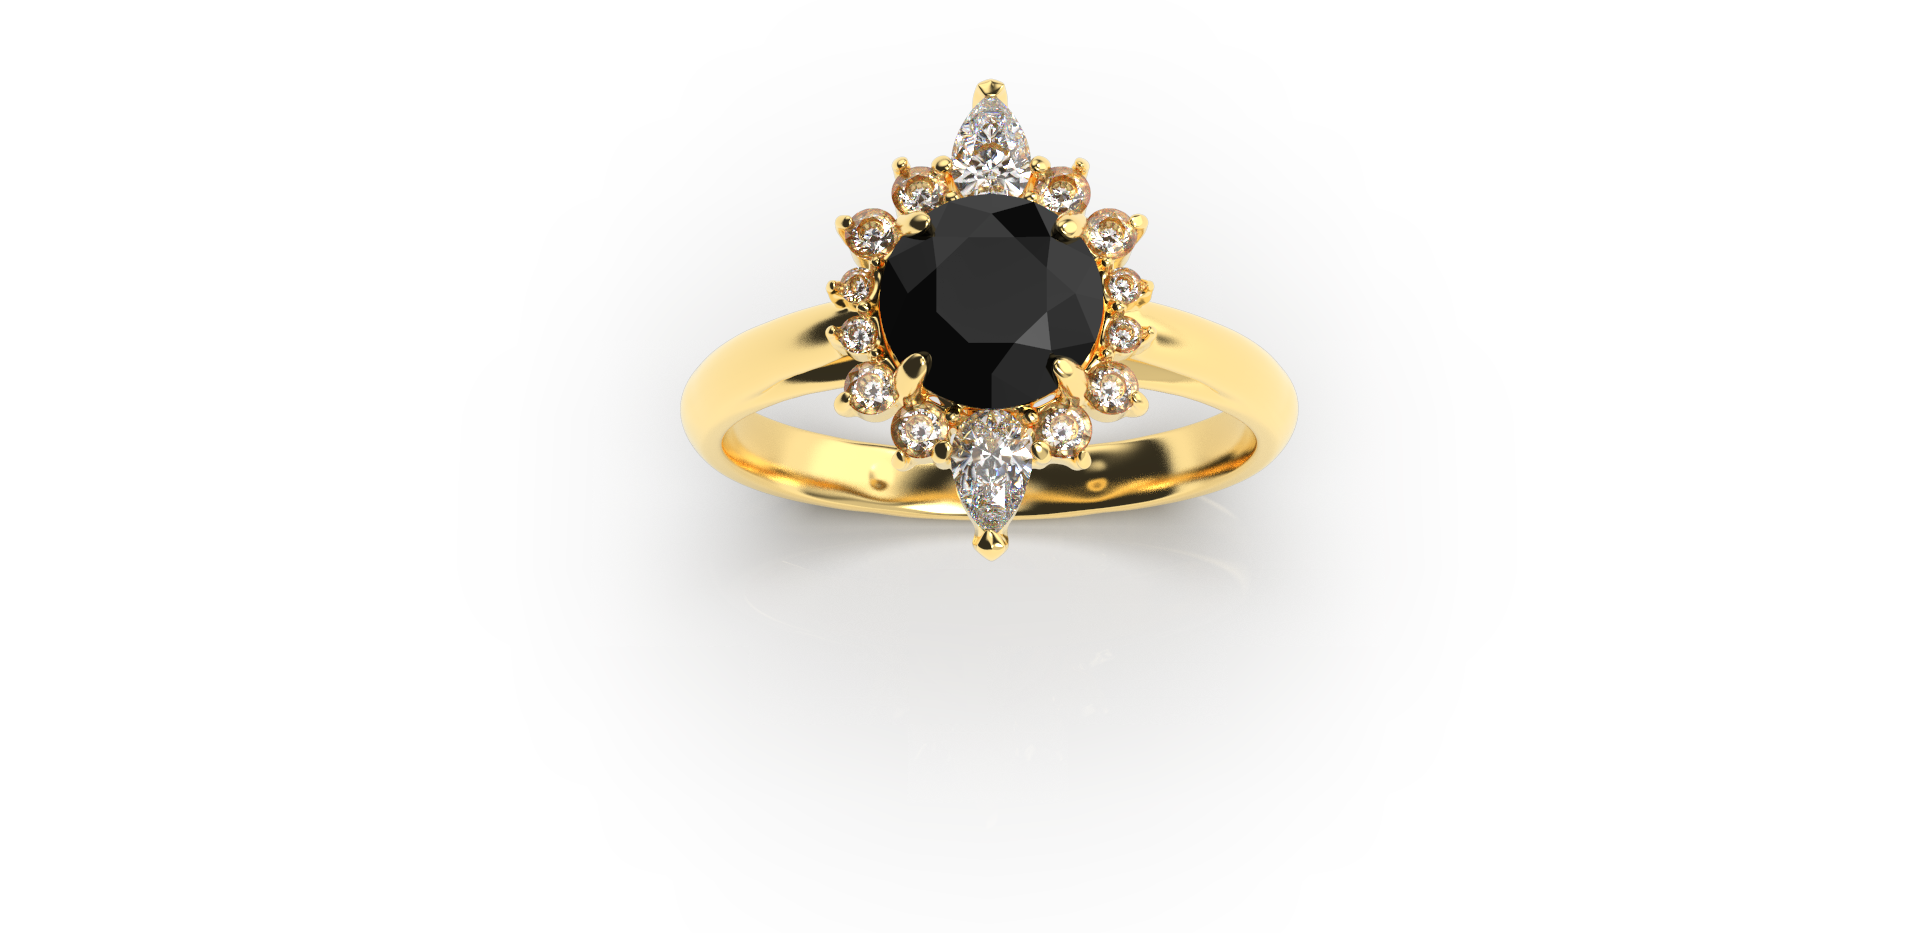 Bruce Trick - Black Diamond Ring perspec